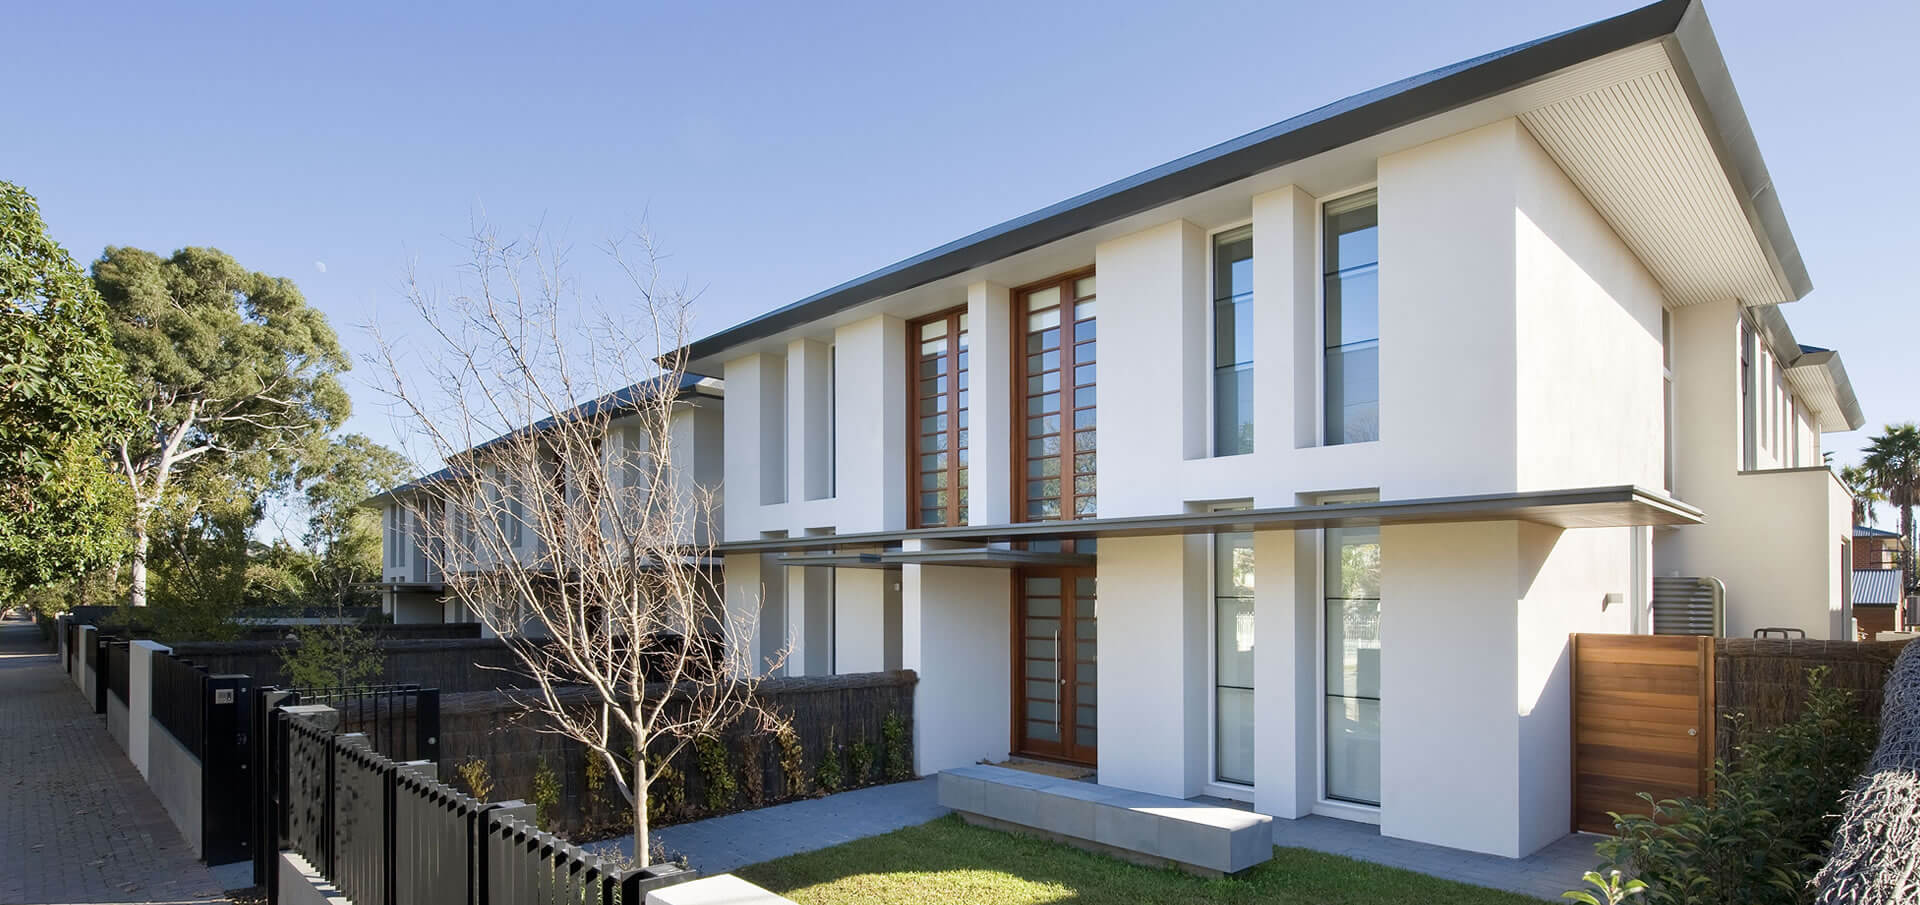 Have You Ever Wondered about the Pros and Cons of Adelaide Architects